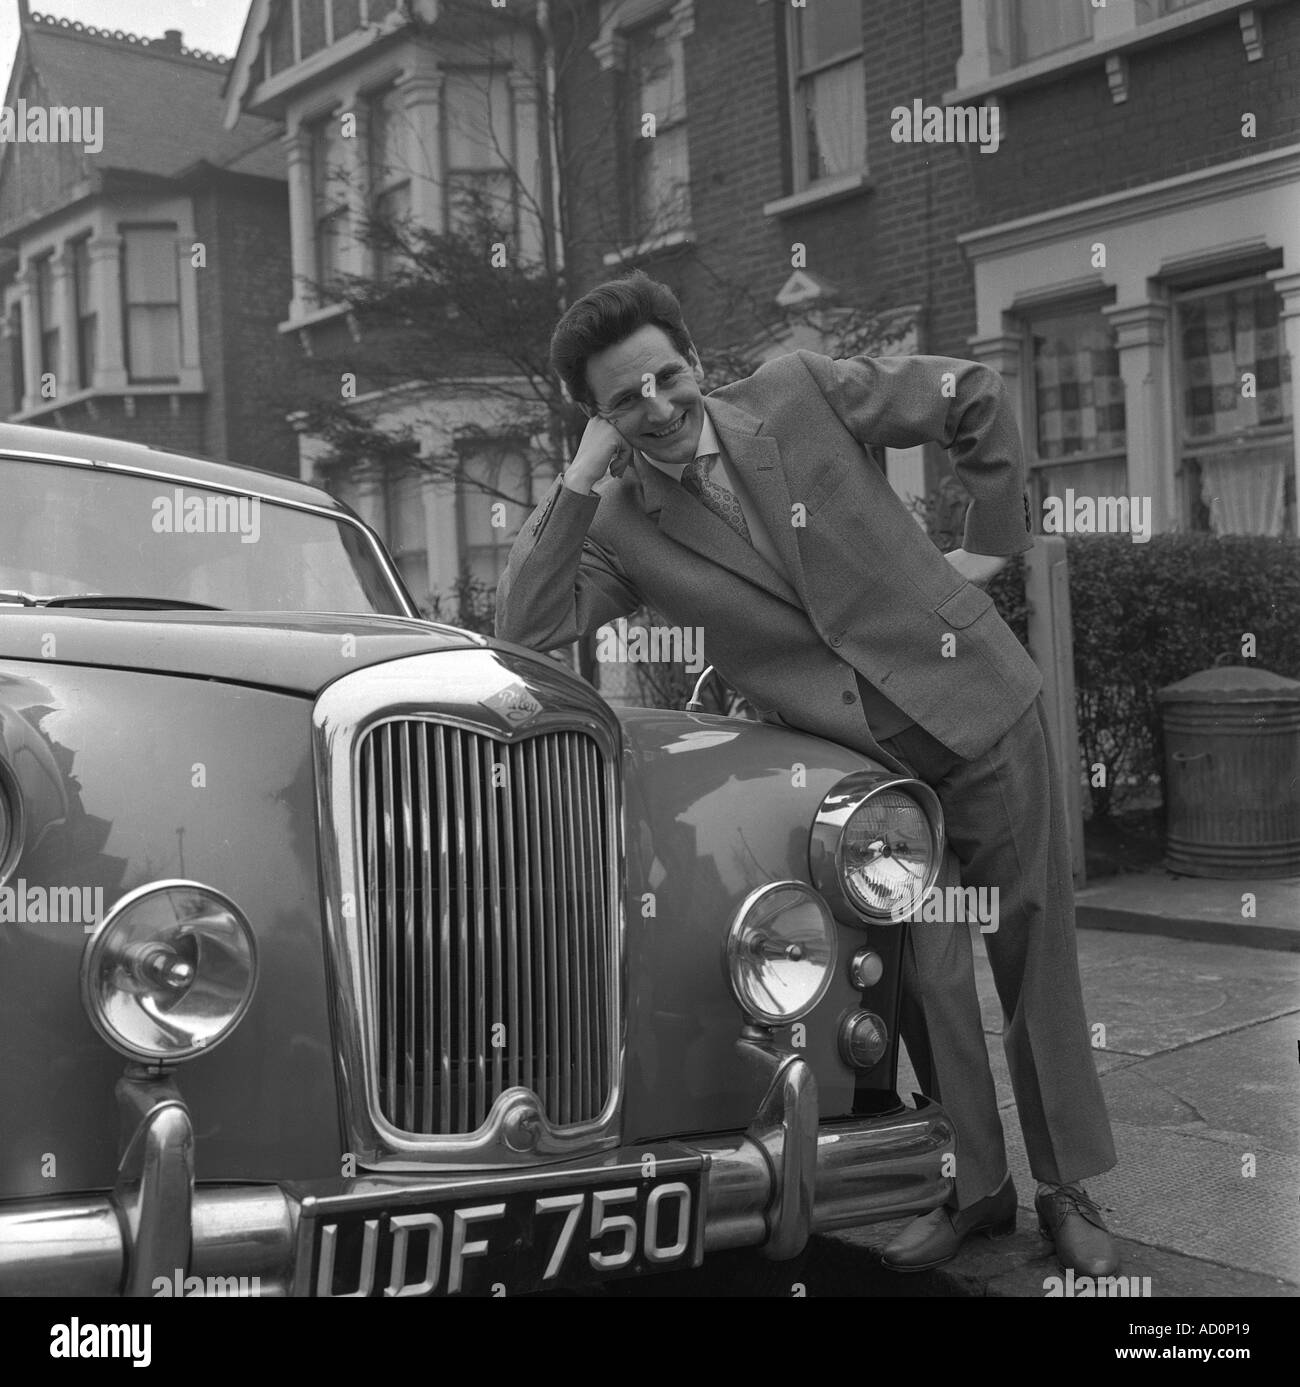 Lonnie Donegan. Photo by Harry Hammond. UK, 1960s. - Stock Image